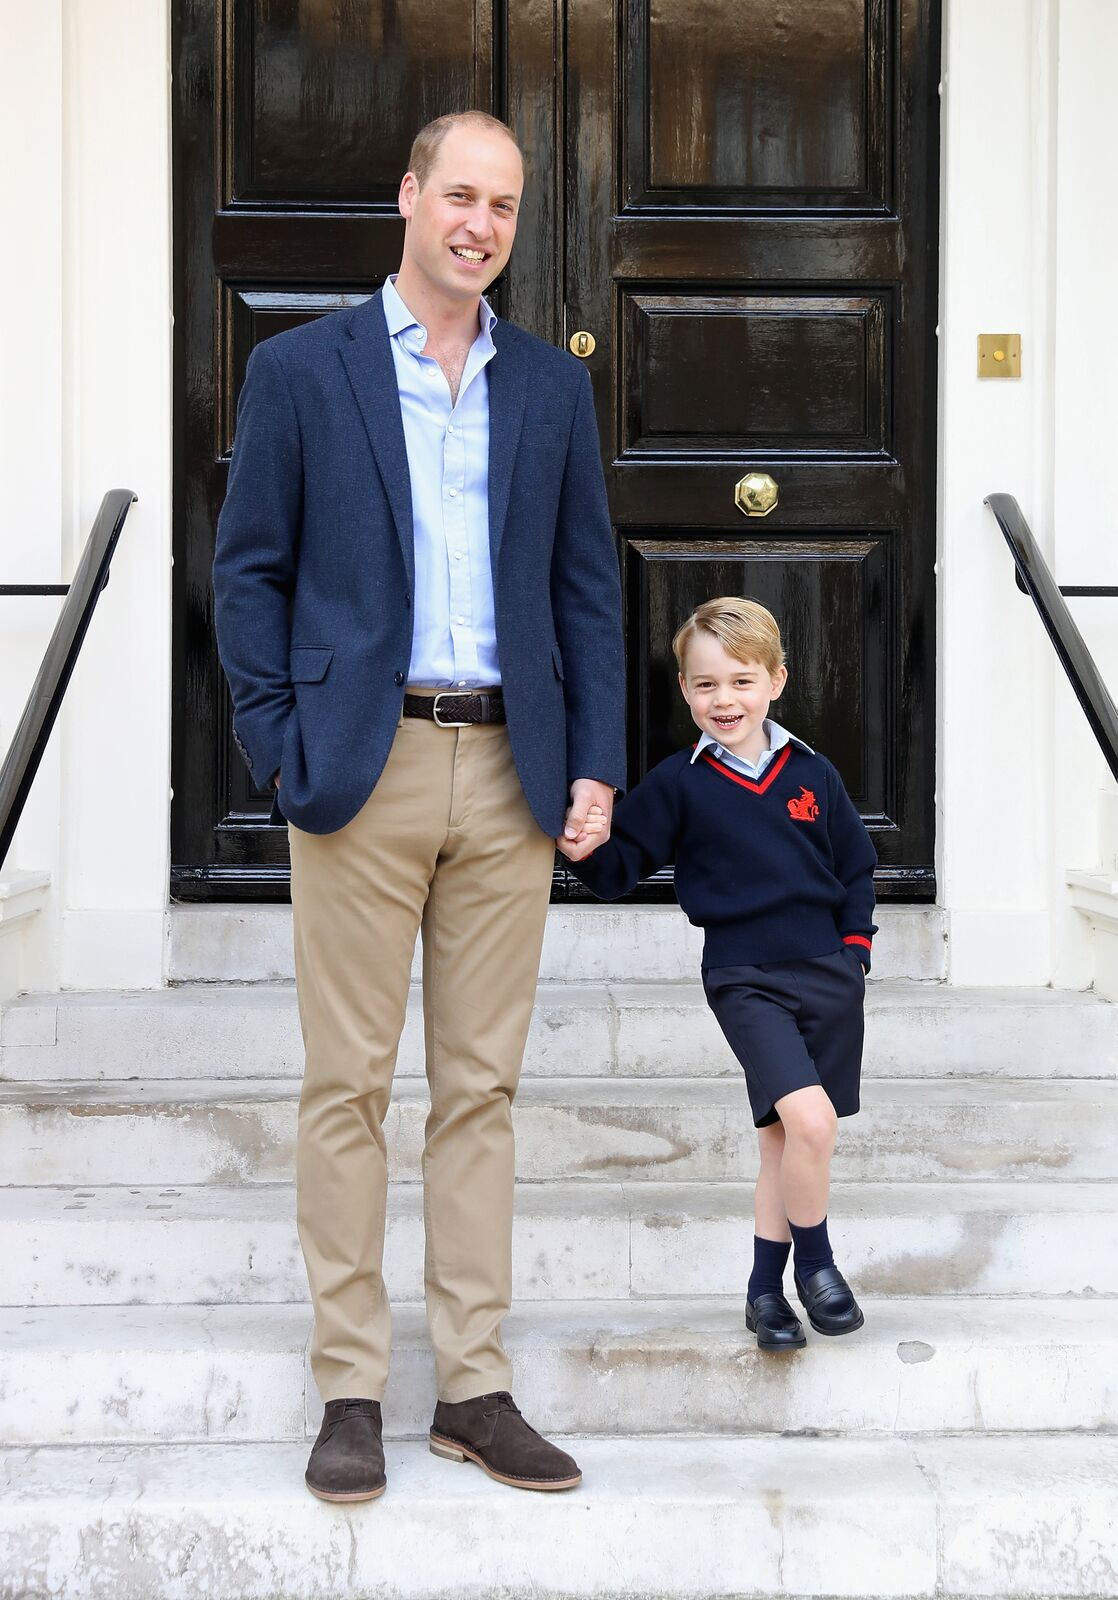 Prince George and his father Prince William pose for a photo on his first day of school at Thomas's Battersea    Source: Getty Images